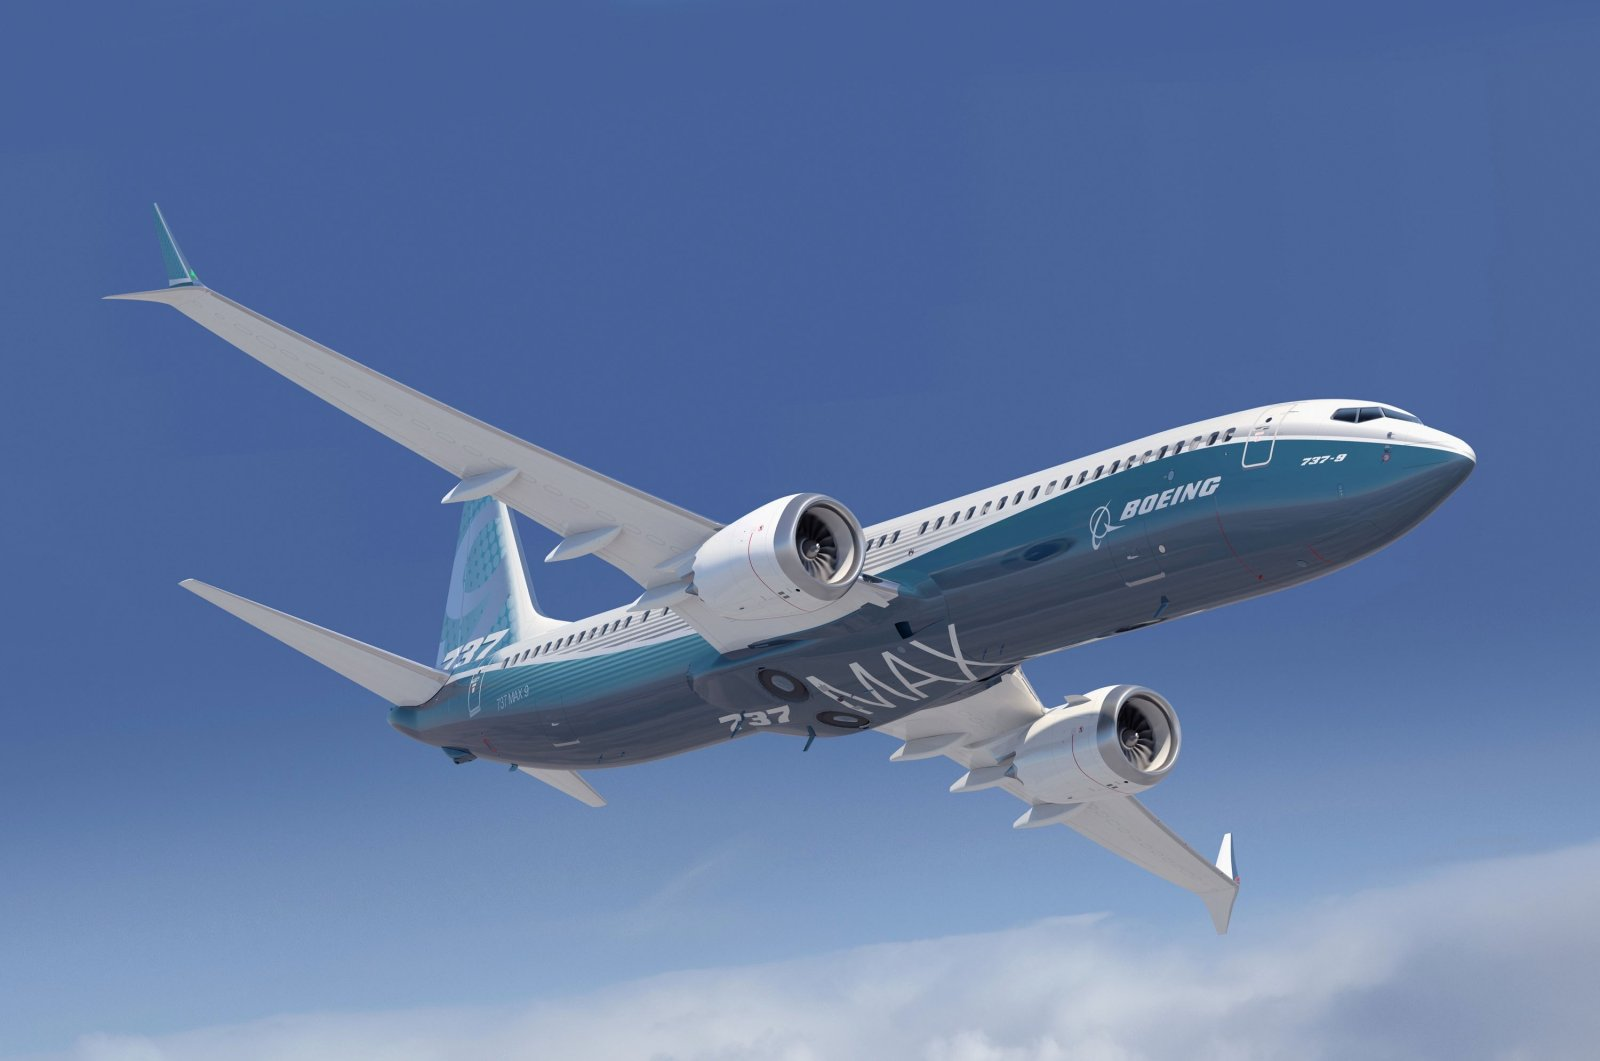 A Boeing 737-Max plane is seen in this image provided Aug. 9, 2021. (IHA Photo)